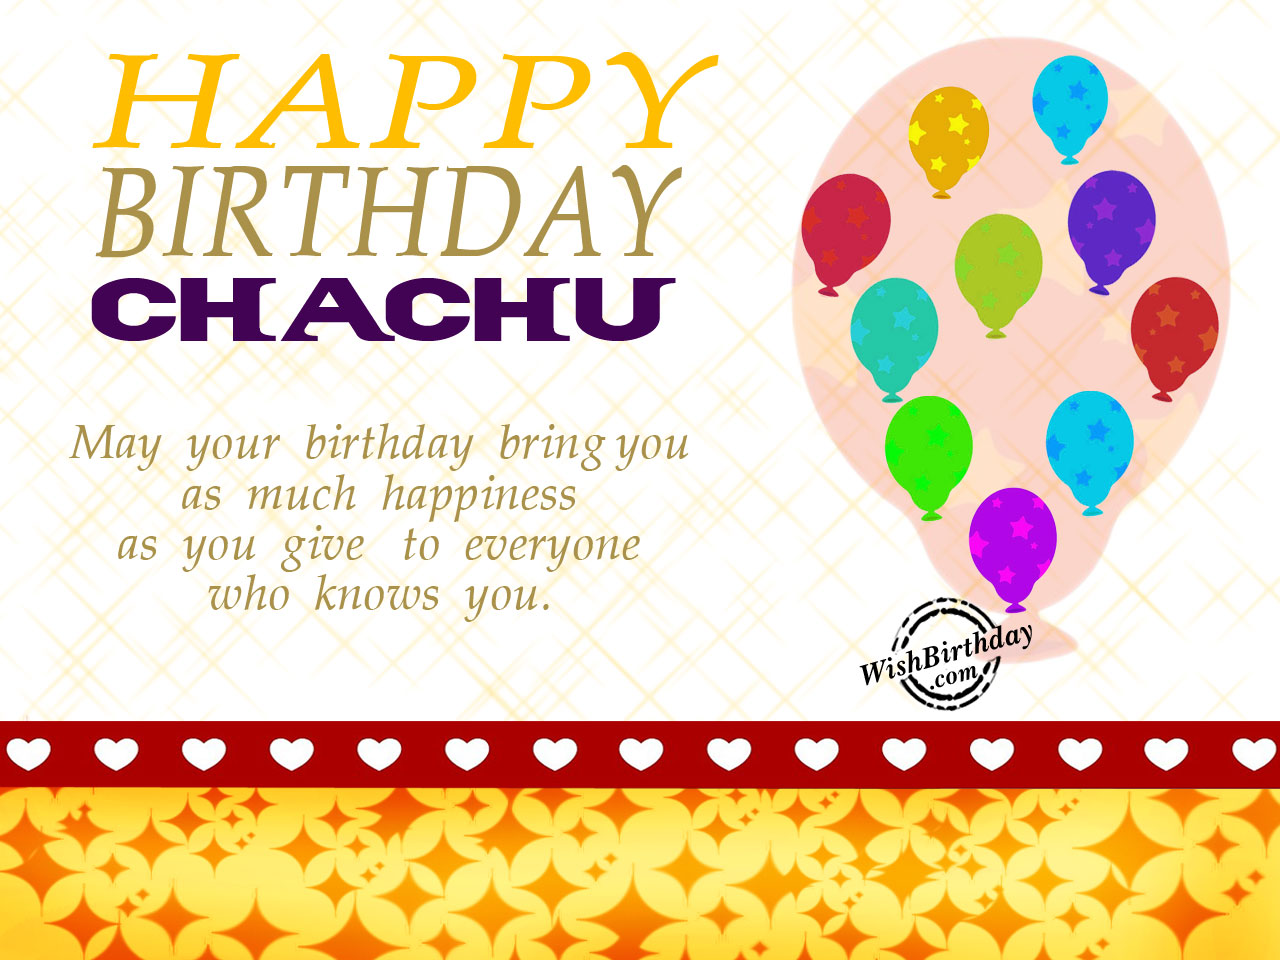 happy birthday chachu wallpaper ; May-your-birthday-give-you-as-much-happiness